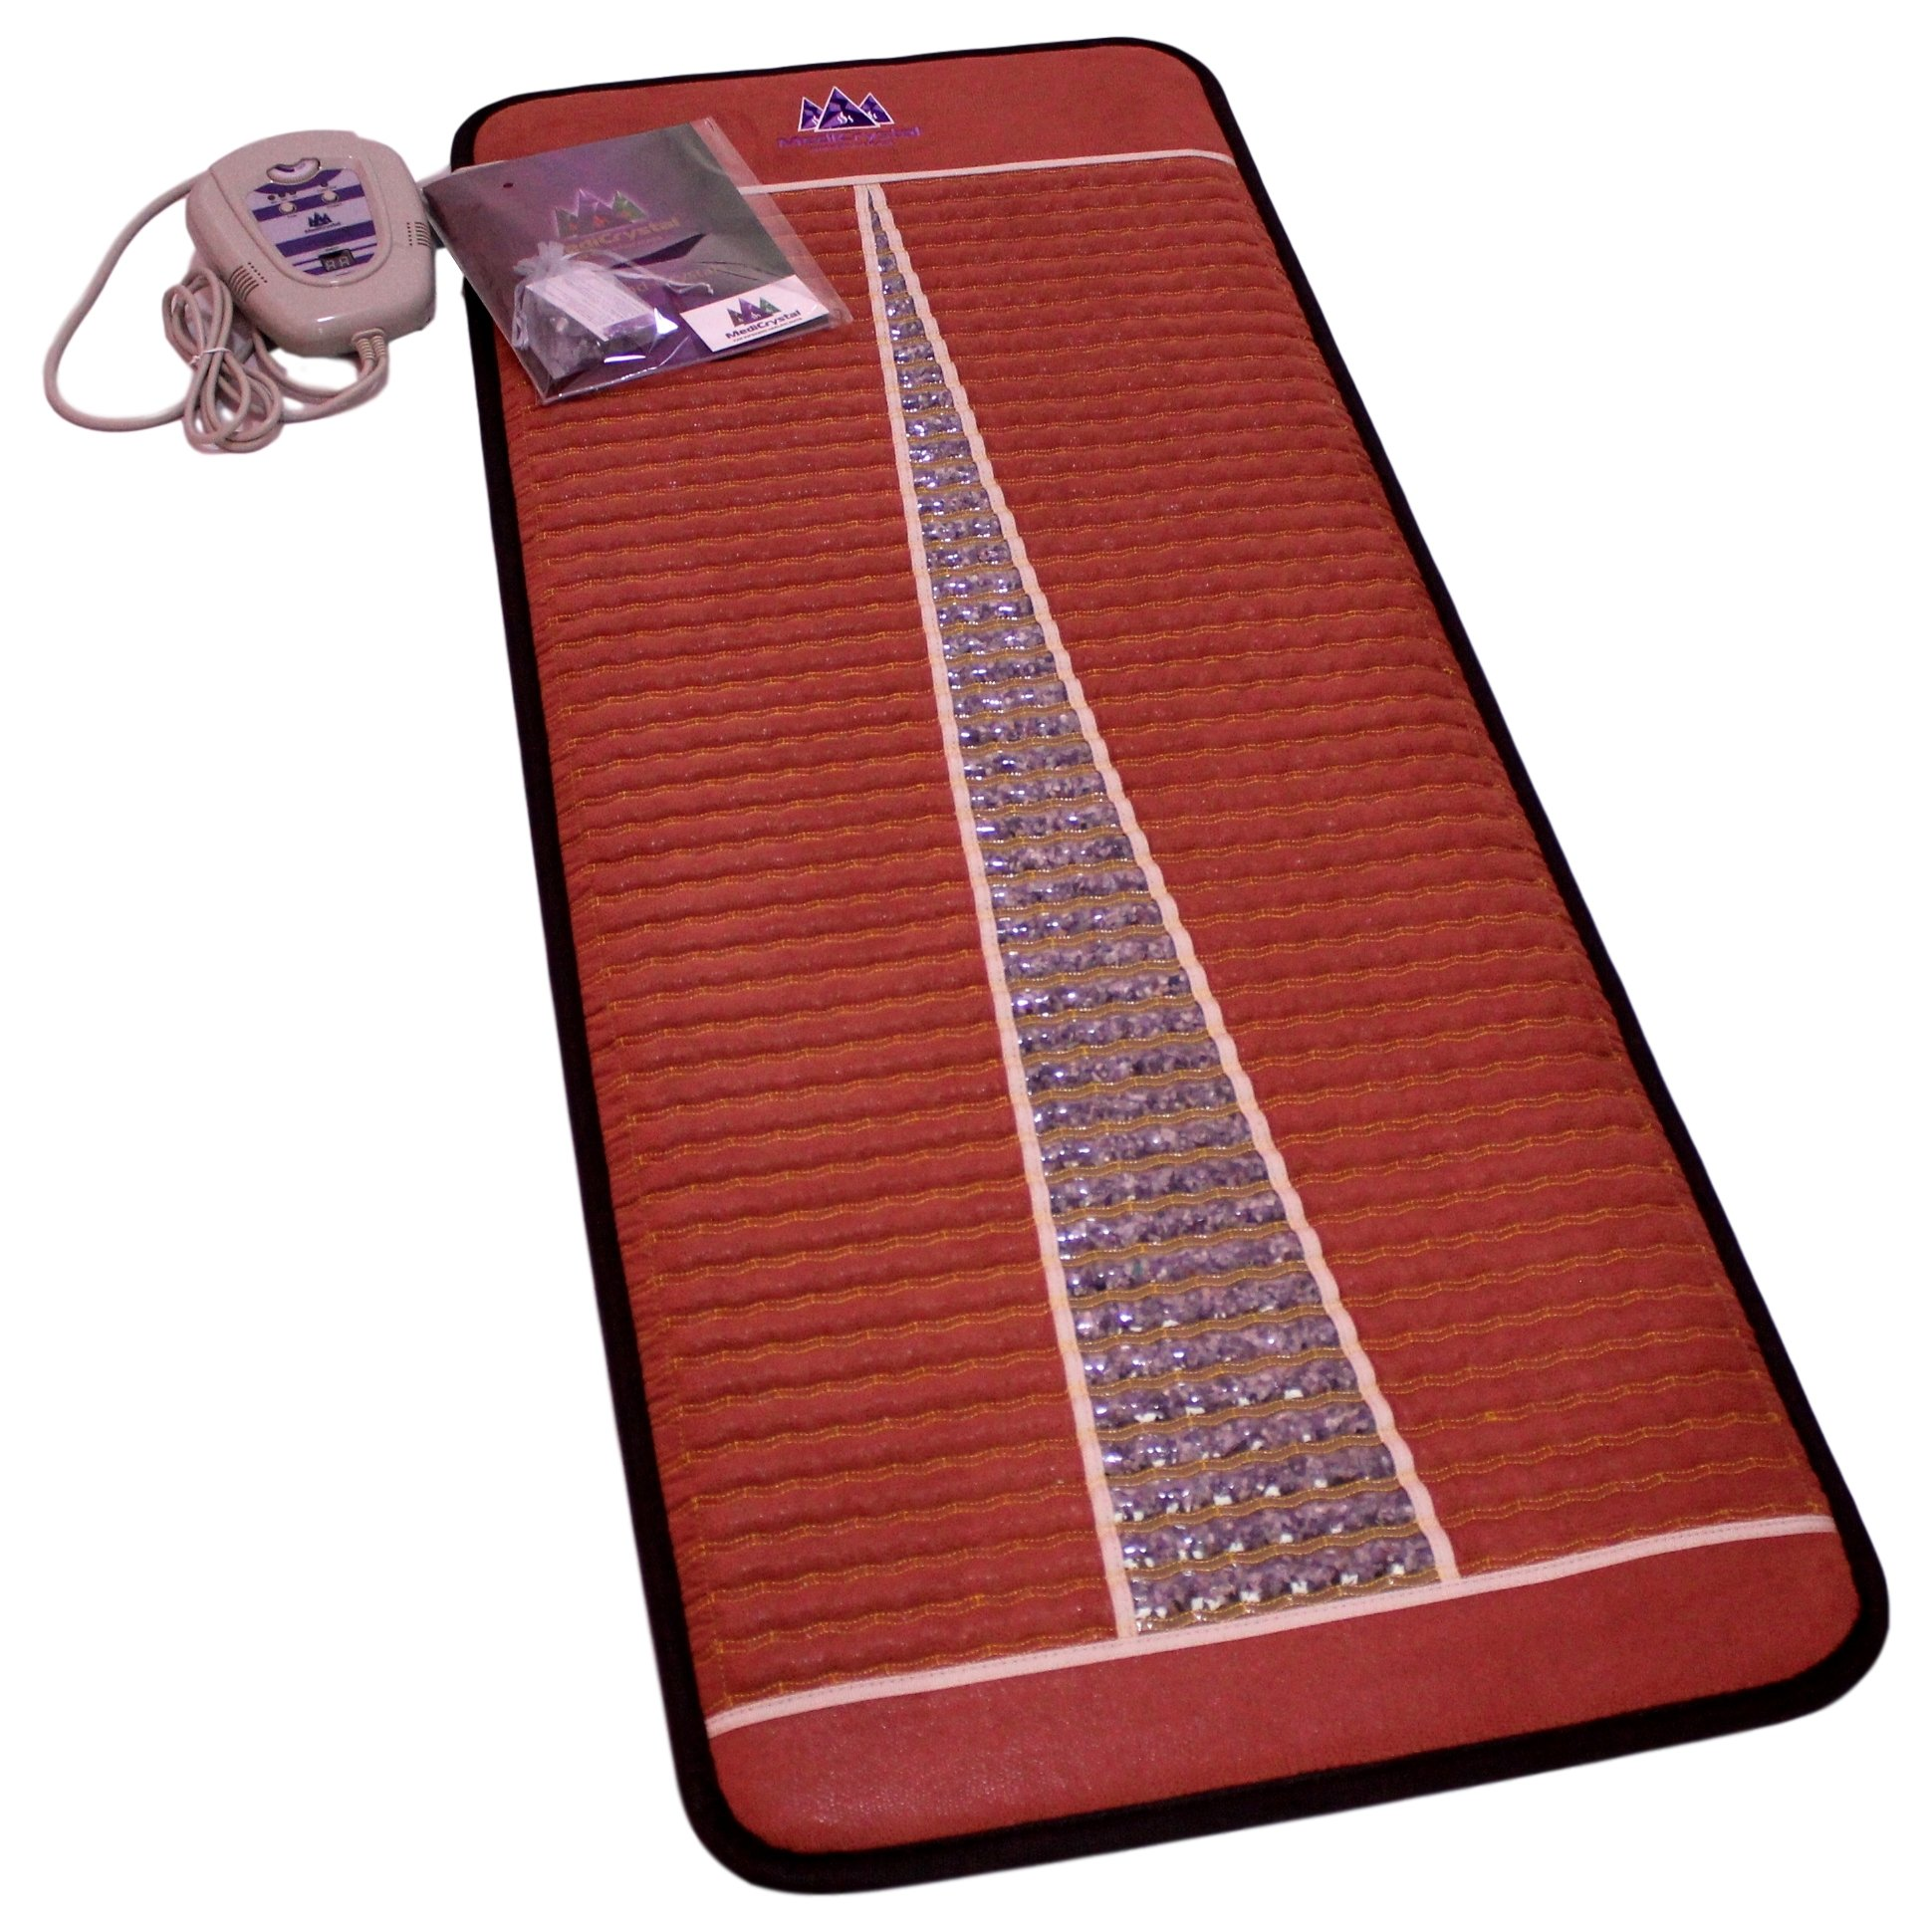 Far Infrared Amethyst Mat Midsize (59''L x 24''W) - Negative Ion - FIR Therapy - Natural Amethyst - FDA Registered Manufacturer - Adjustable Temperature Setting - Hot Crystal Heating Pad - Reddish Brown by MediCrystal